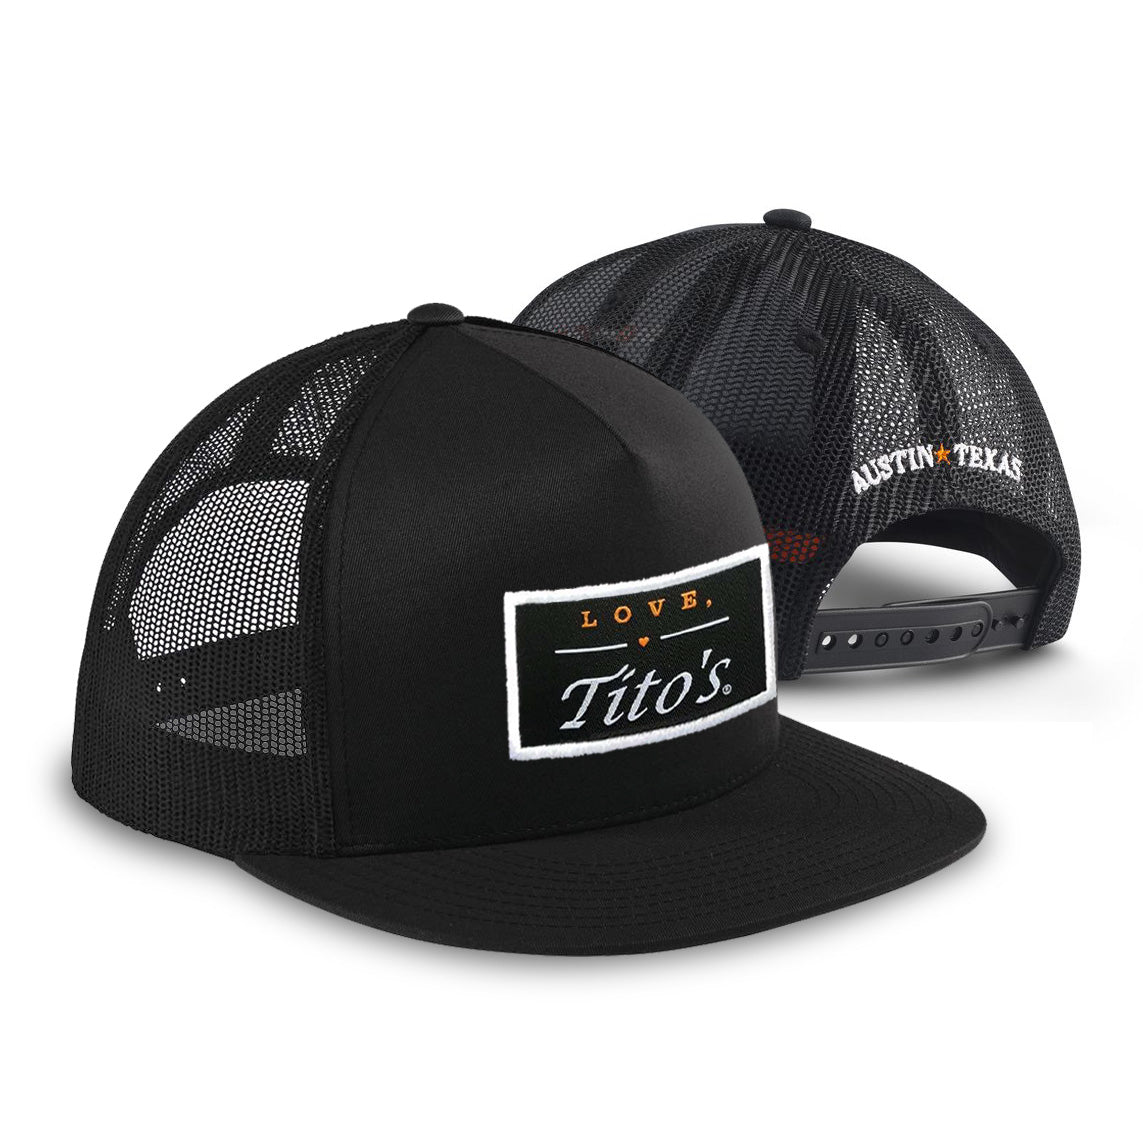 "Black trucker hat with ""Love, Tito's"" logo patch on front and ""Austin, Texas"" embroidered on back"